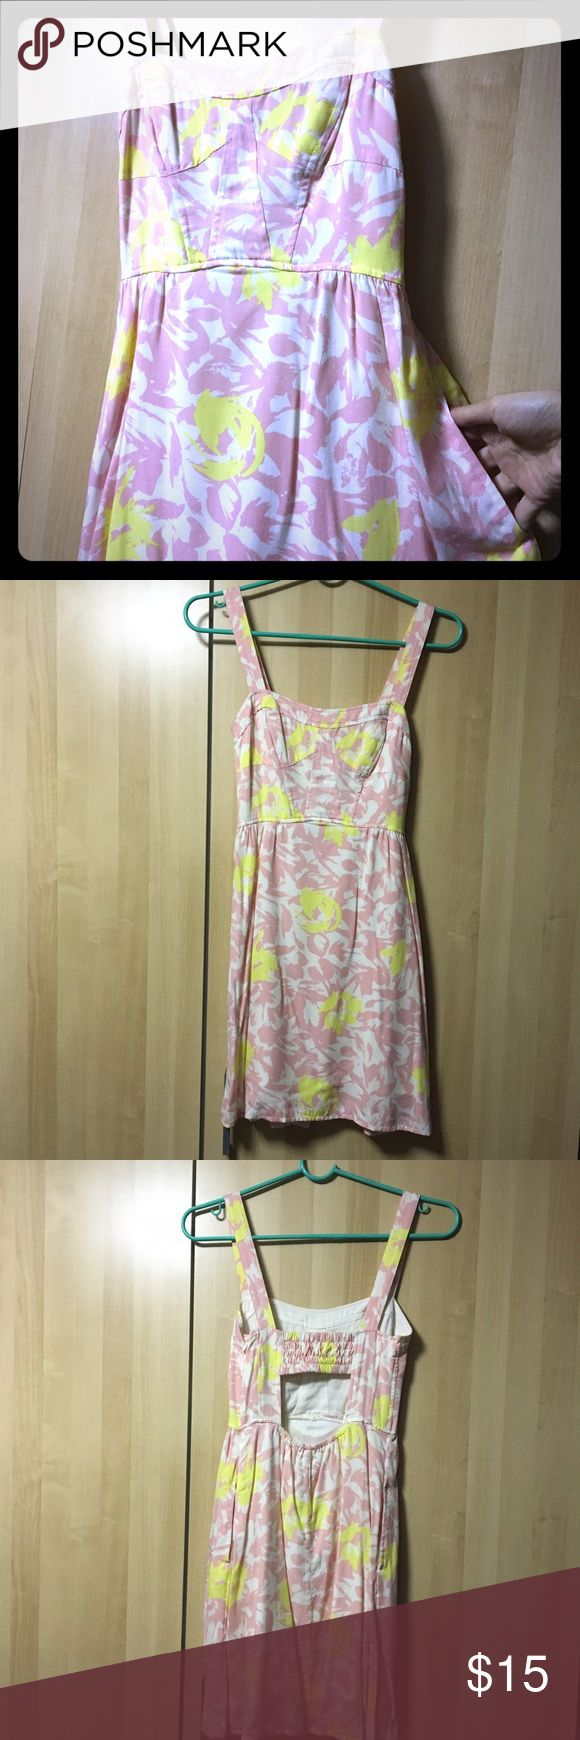 Black Poppy Sundress A cute & flirty sundress with a floral/petal pattern in pink, white & yellow, by Black Poppy from Pacsun. Fitted at top with cutout in back and stretchy, lightweight comfortable material two layers at bottom. Two side pockets, really convenient and adorable. Lightly worn, excellent condition. Questions welcomed Black Poppy Dresses Mini